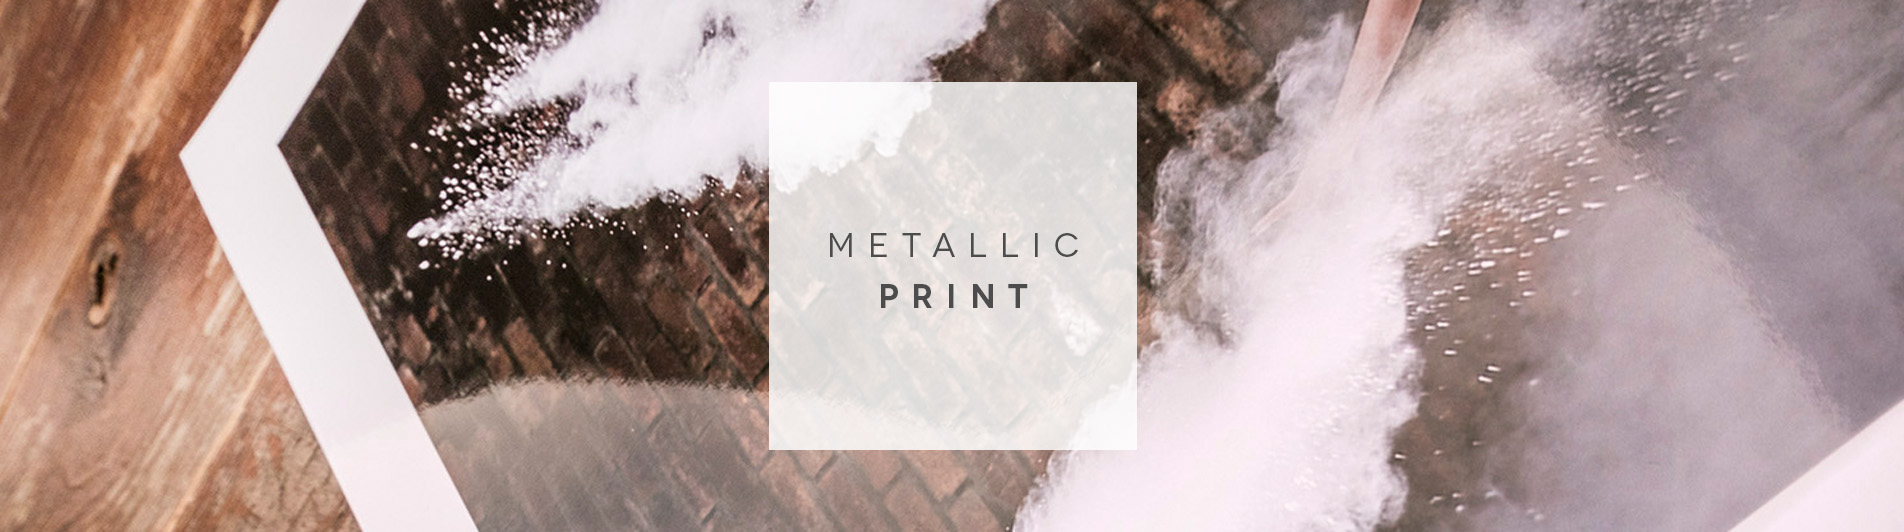 Metallic Prints